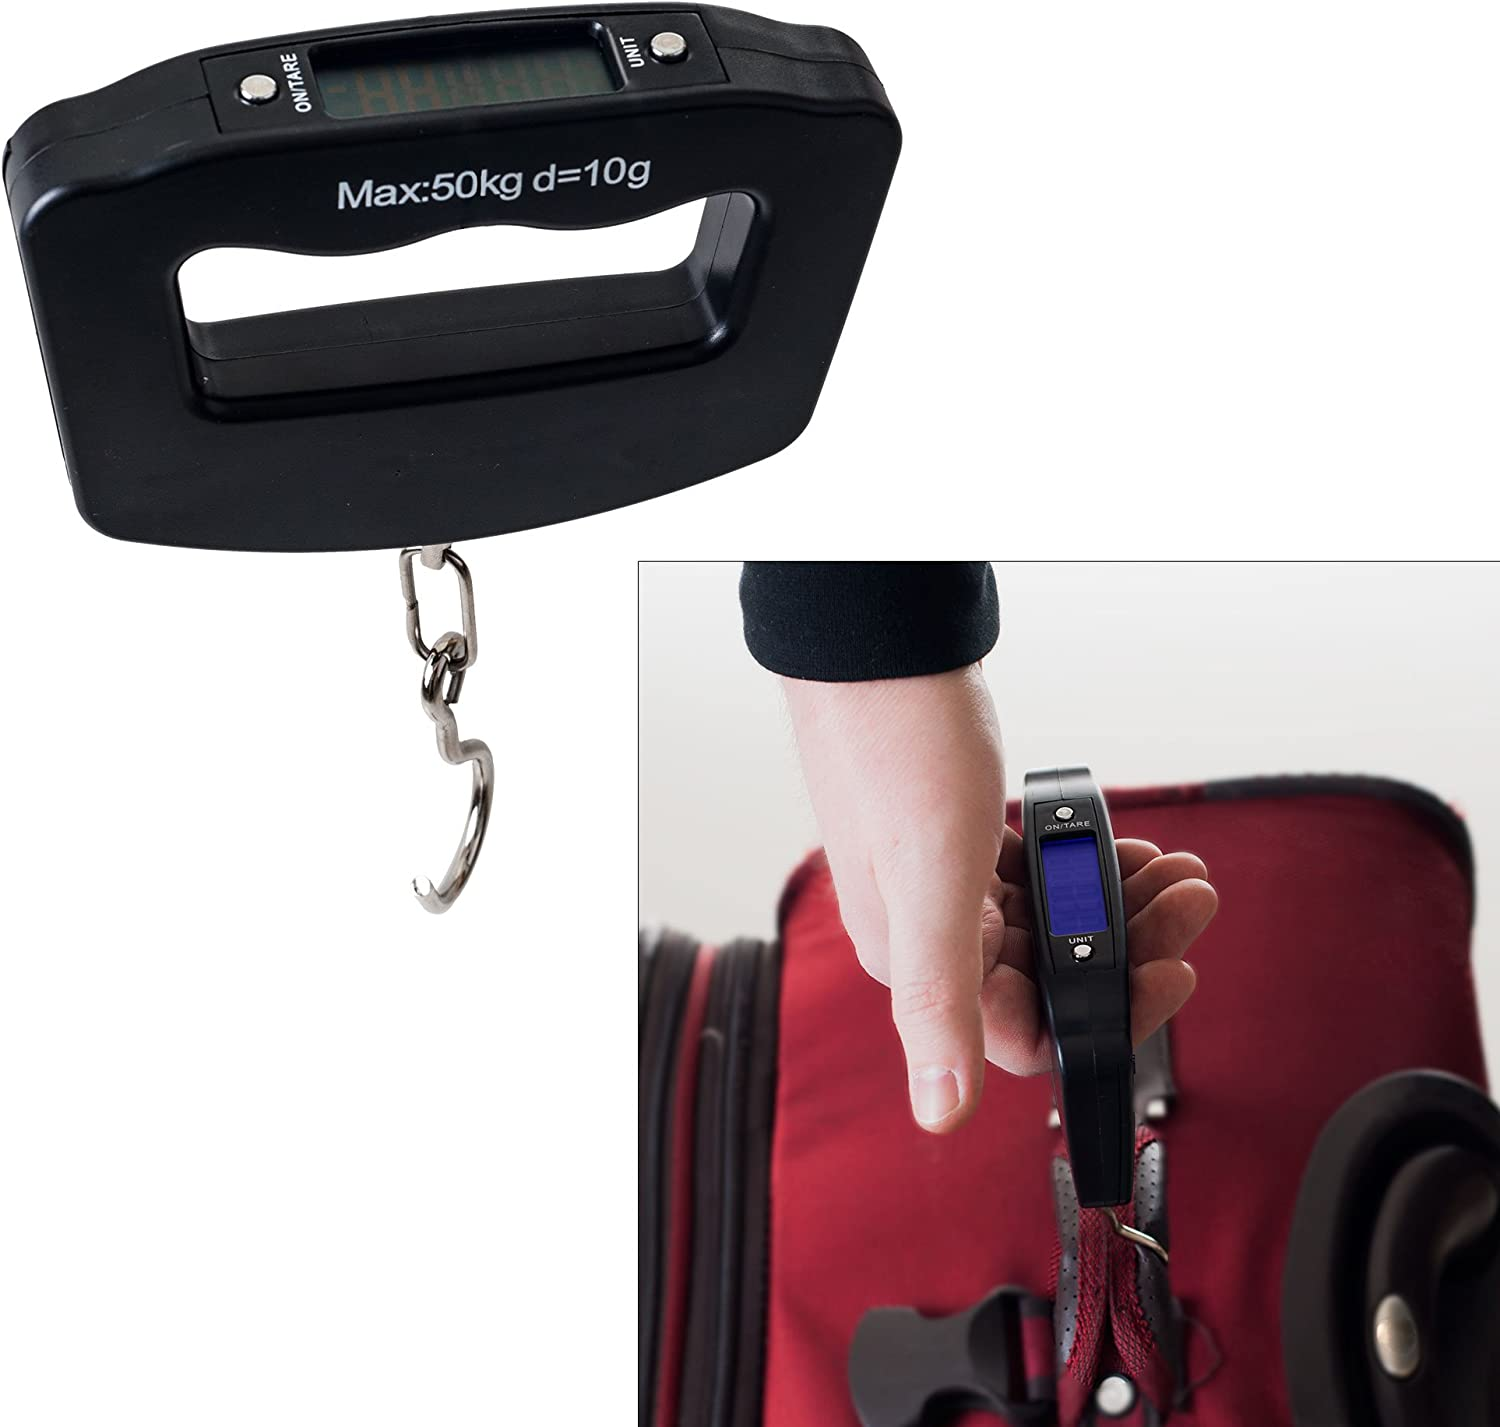 Northwest Digital Luggage Grip Scale-Up to 110 Pounds, Black : Clothing, Shoes & Jewelry